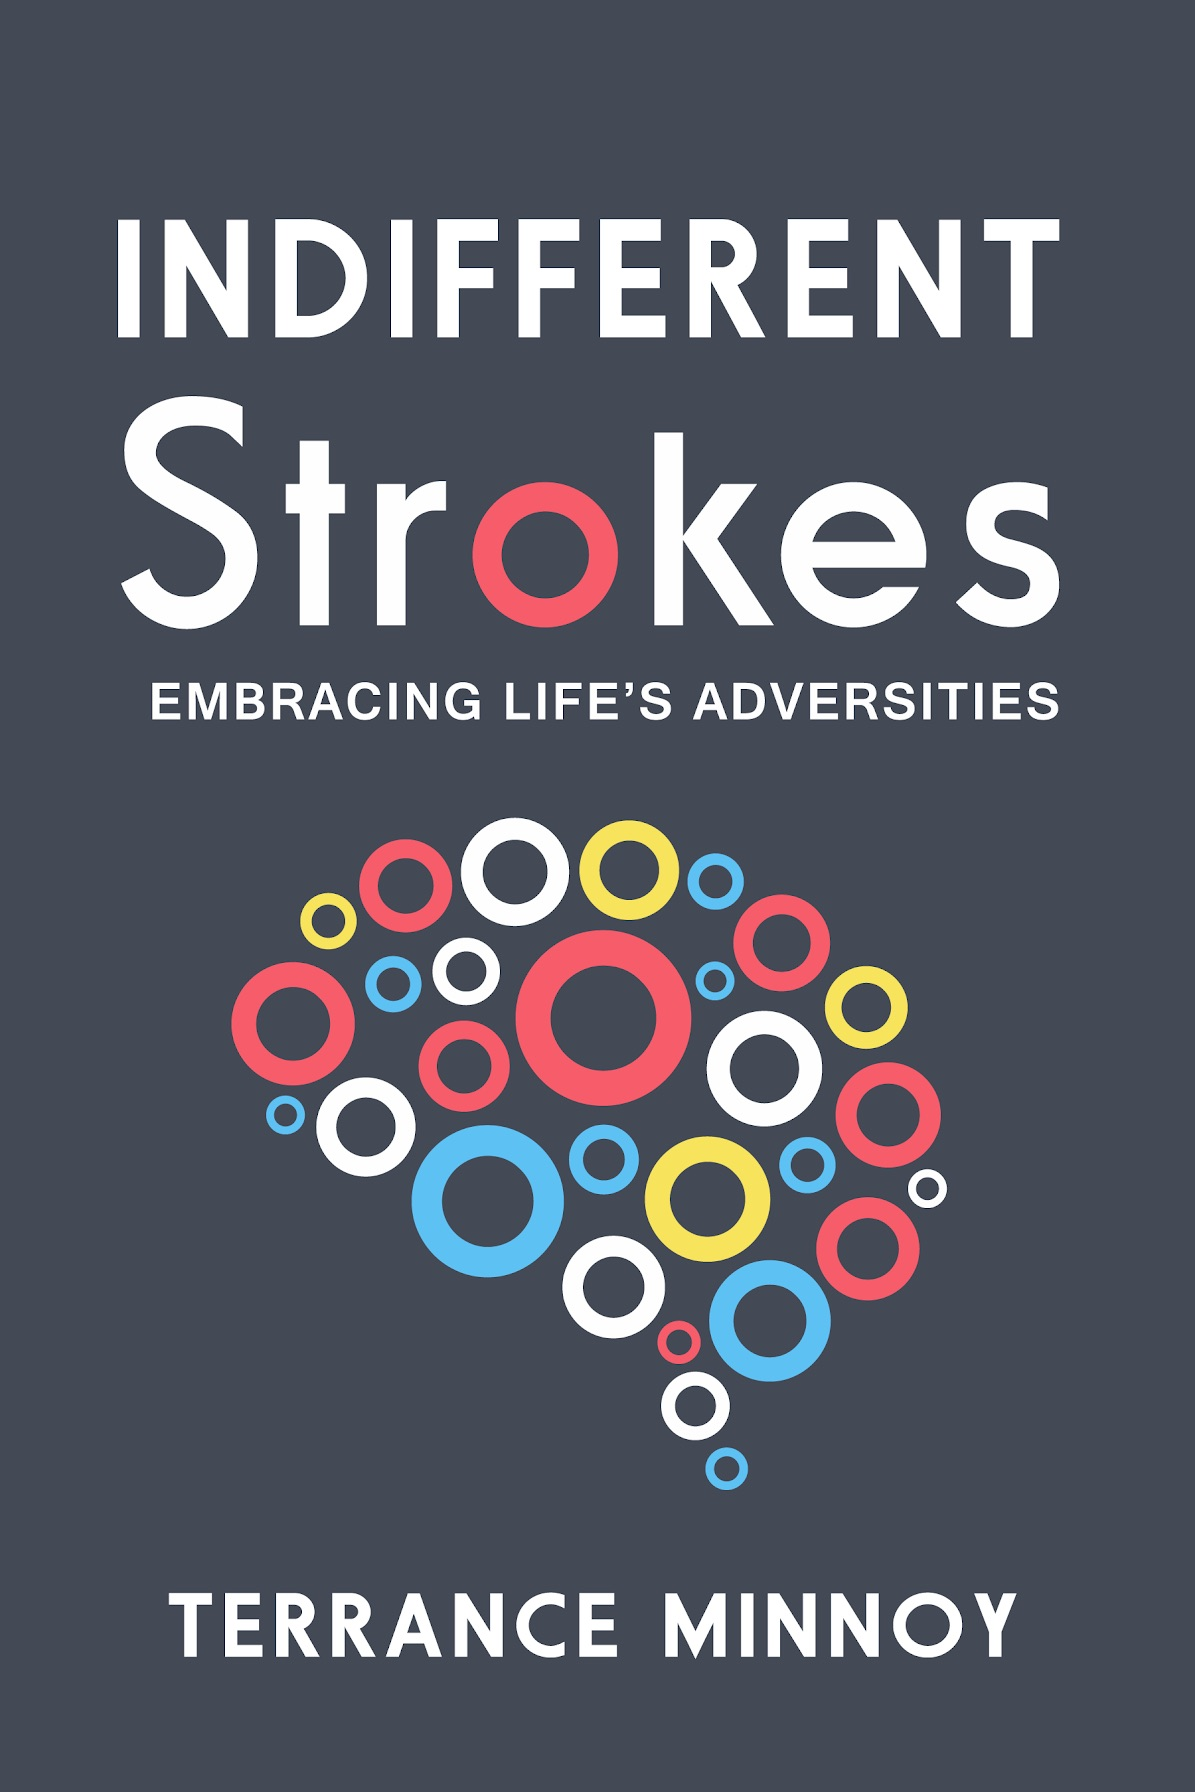 Indifferent Strokes, Embracing Life's Adversities